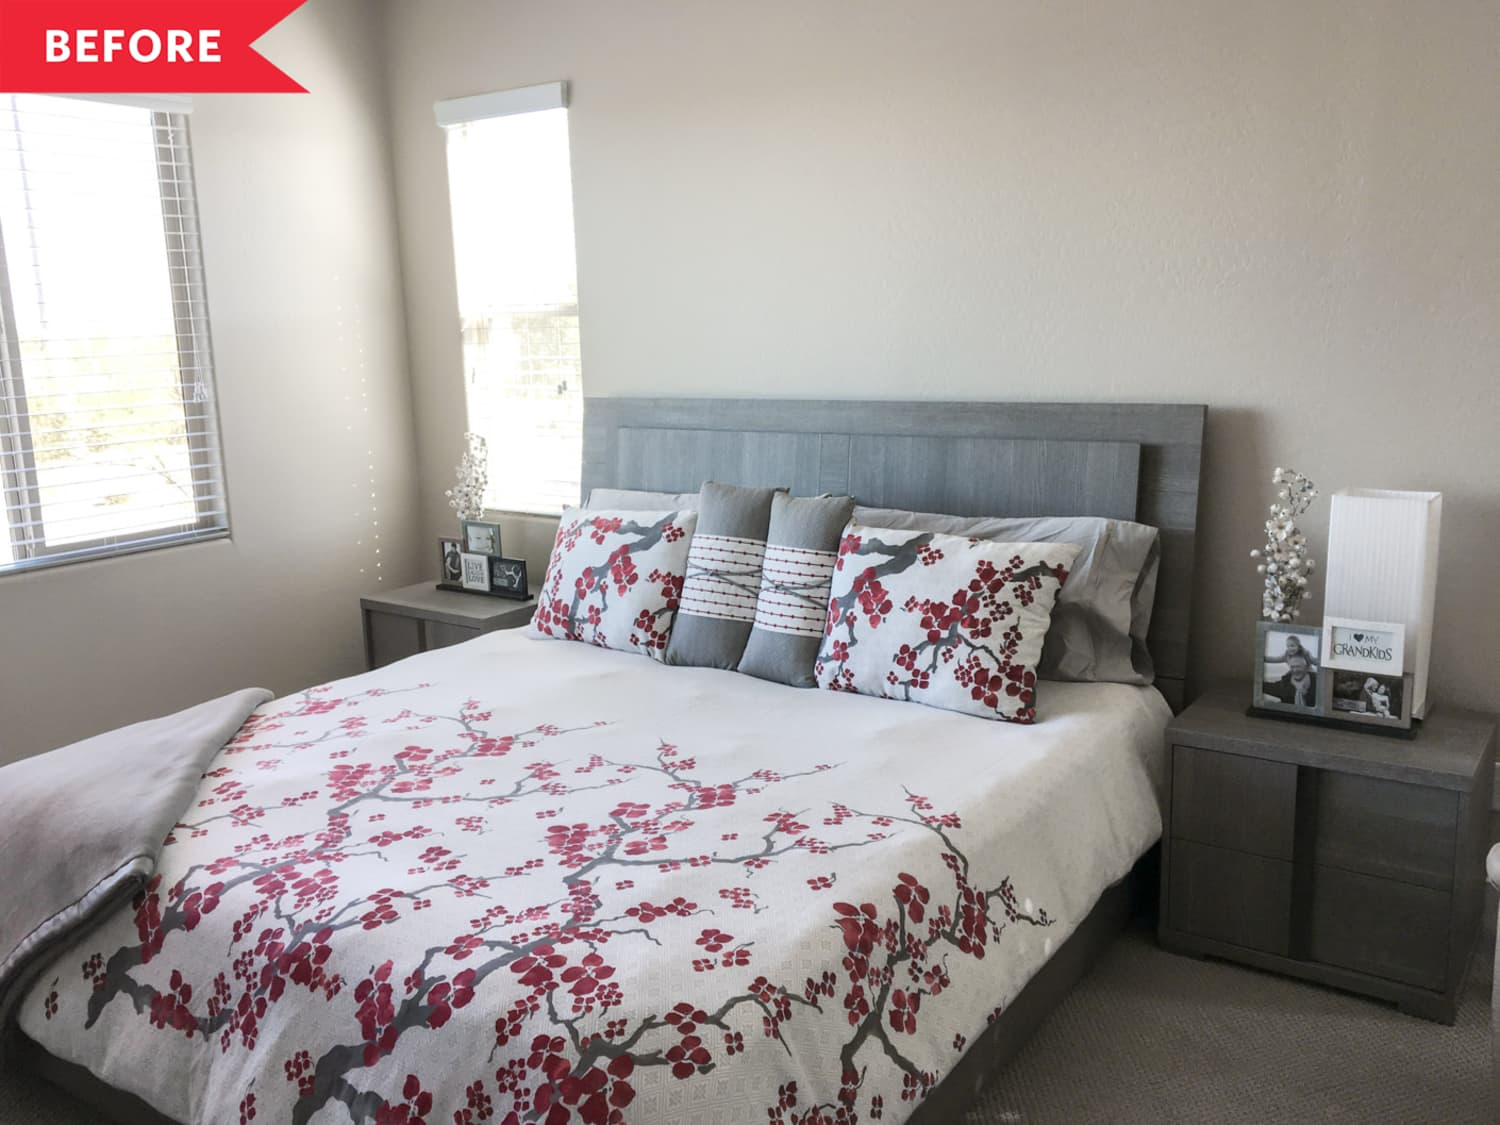 Before and After: A Bedroom Redo Packed with Makeover Ideas You'll Want to Steal